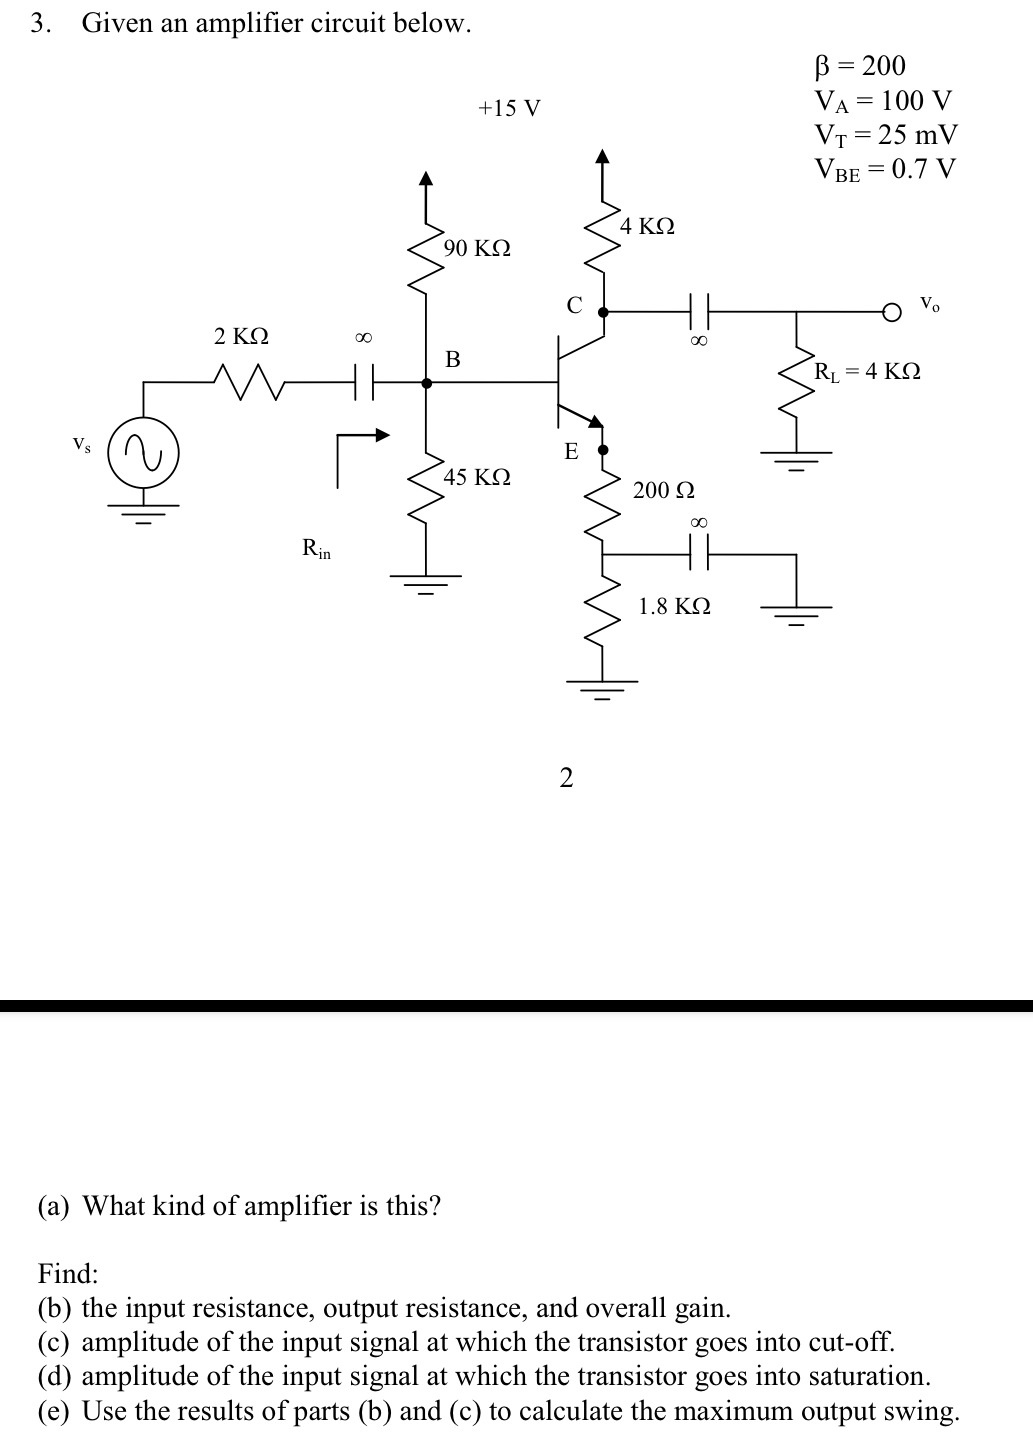 Given an amplifier circuit below. What kind of am